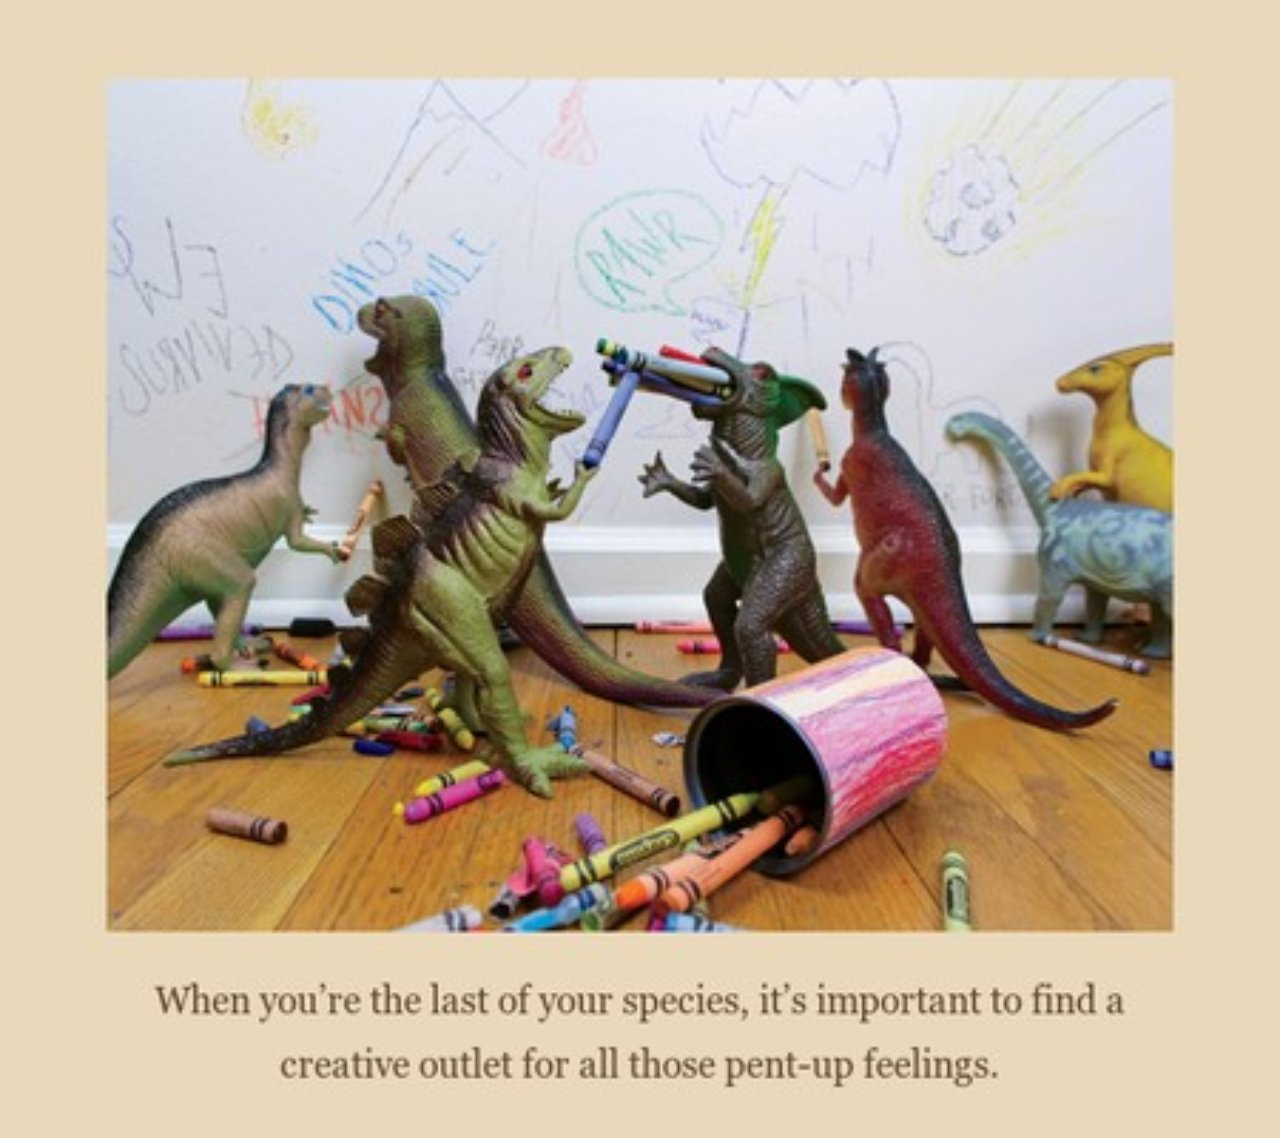 Dinovember zrzut z książki What the Dinosaurs Did Last Night: A Very Messy Adventure